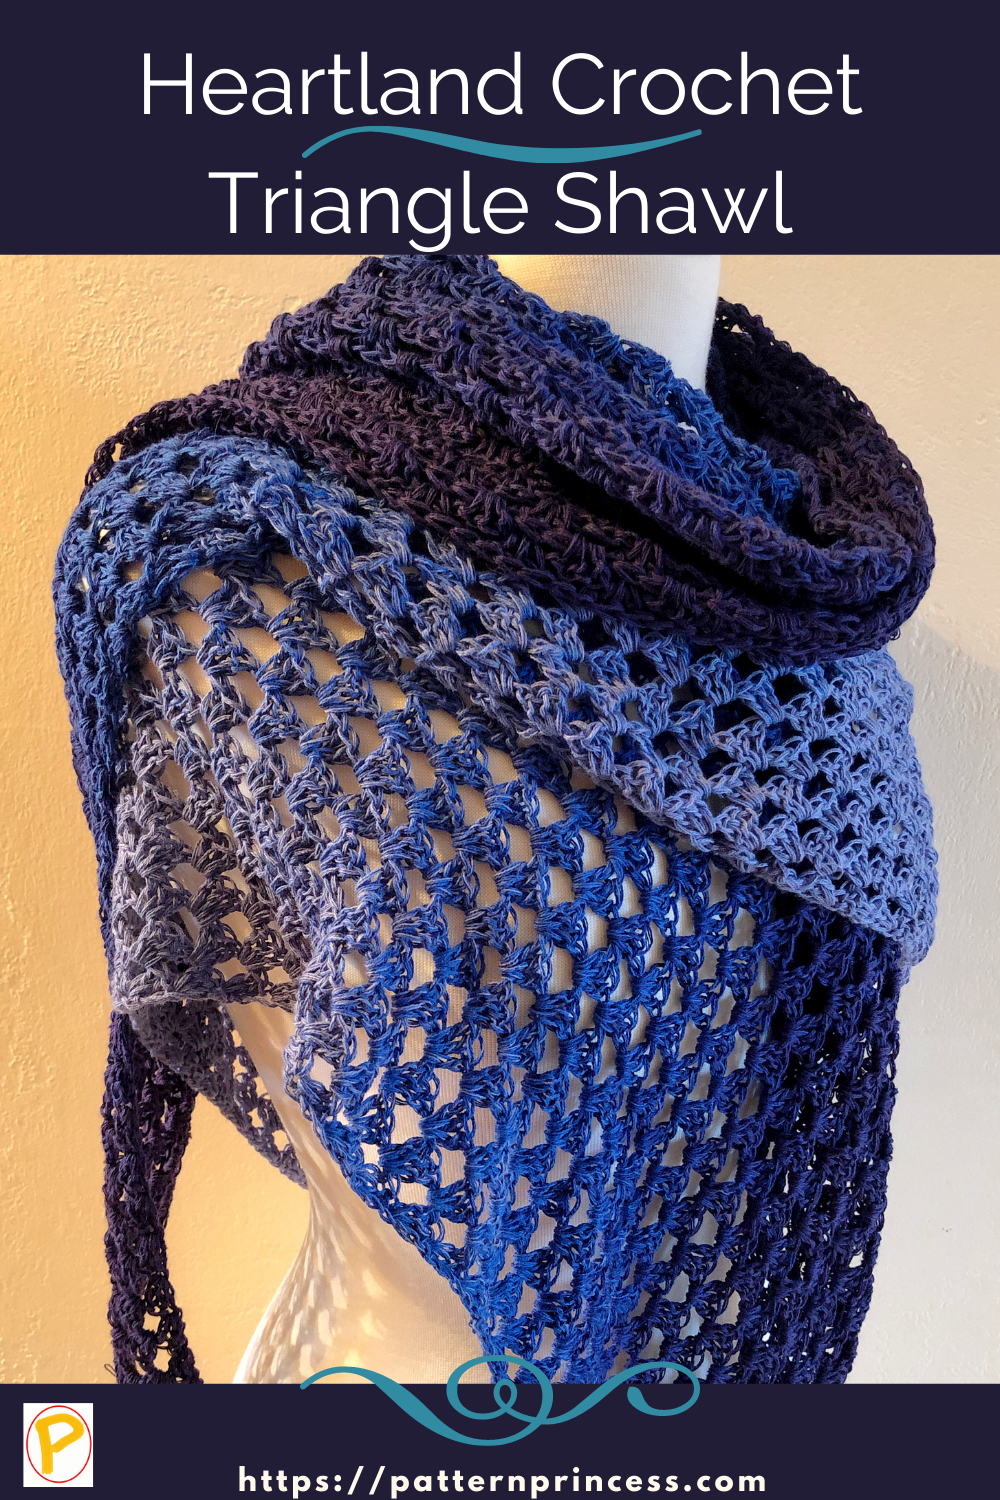 Heartland Crochet Triangle Shawl